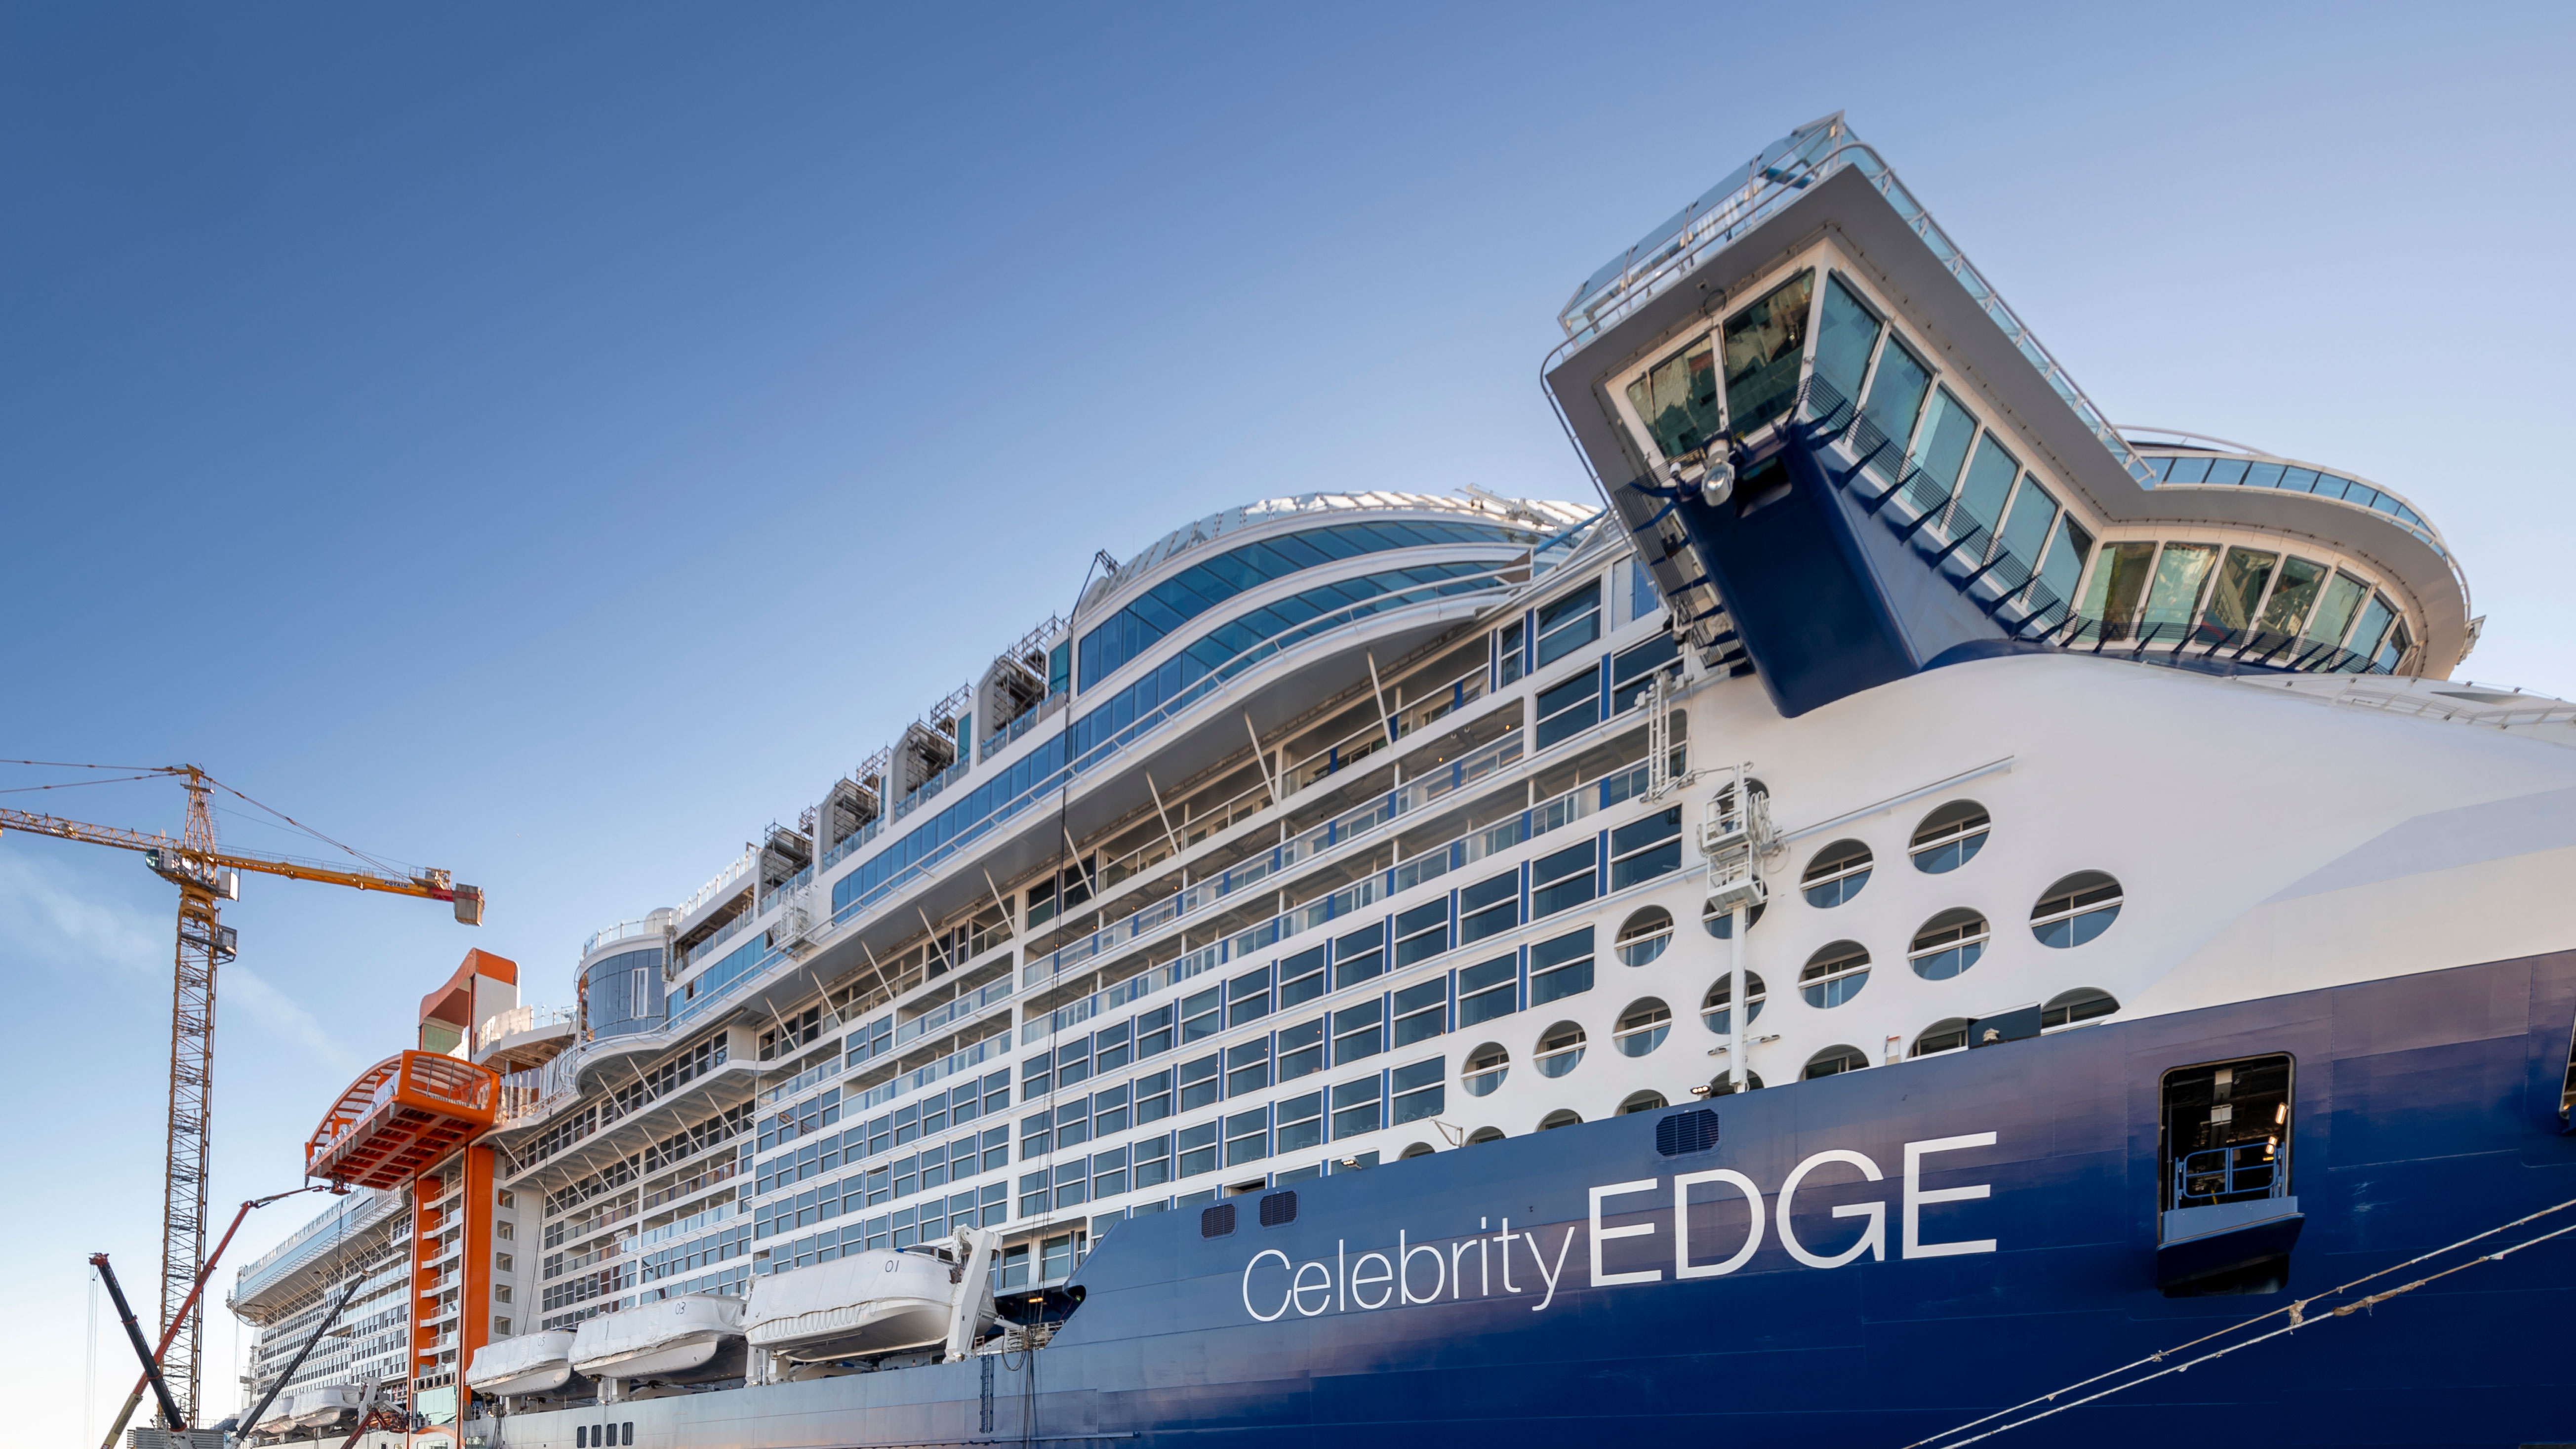 Celebrity Edge: Is this the future of cruise ships? | CNN Travel